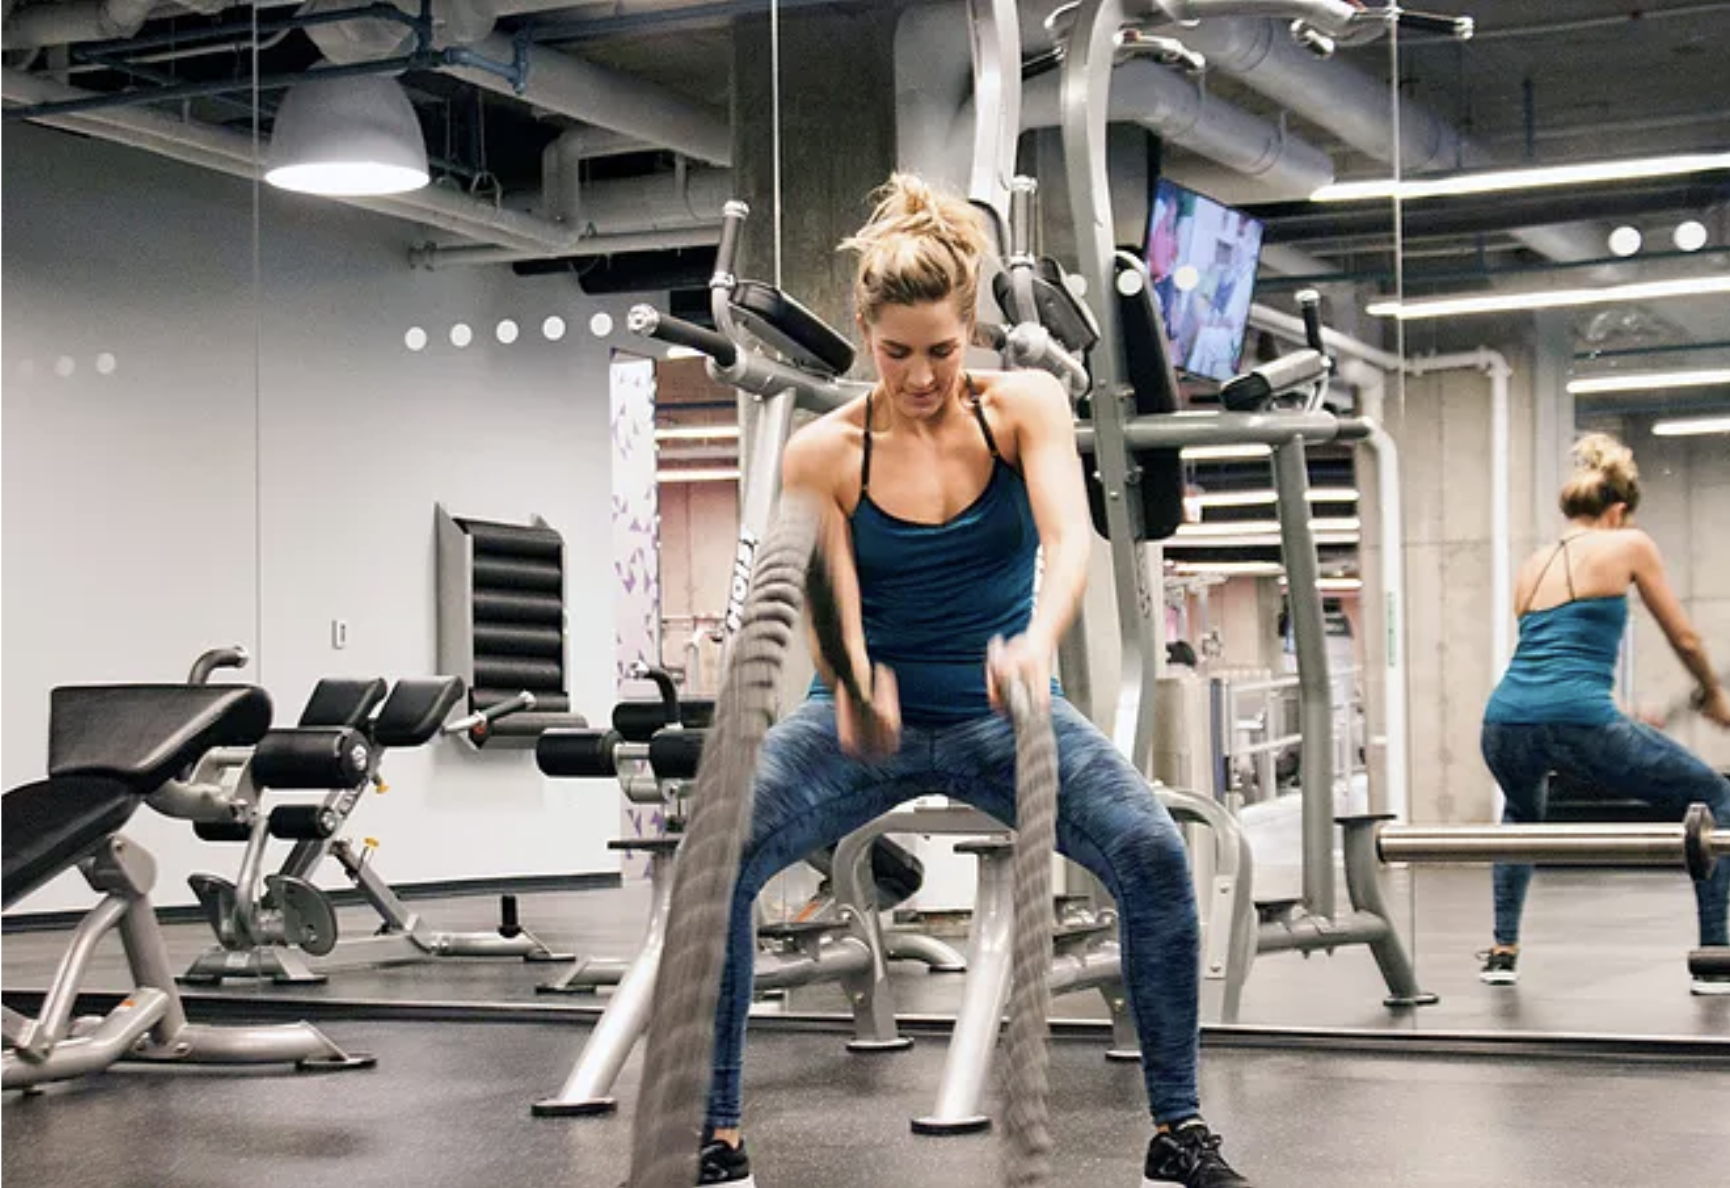 How to Stay Fit During the Holidays - Five fitness experts chime in on how to stay active and healthy while still enjoying the season.